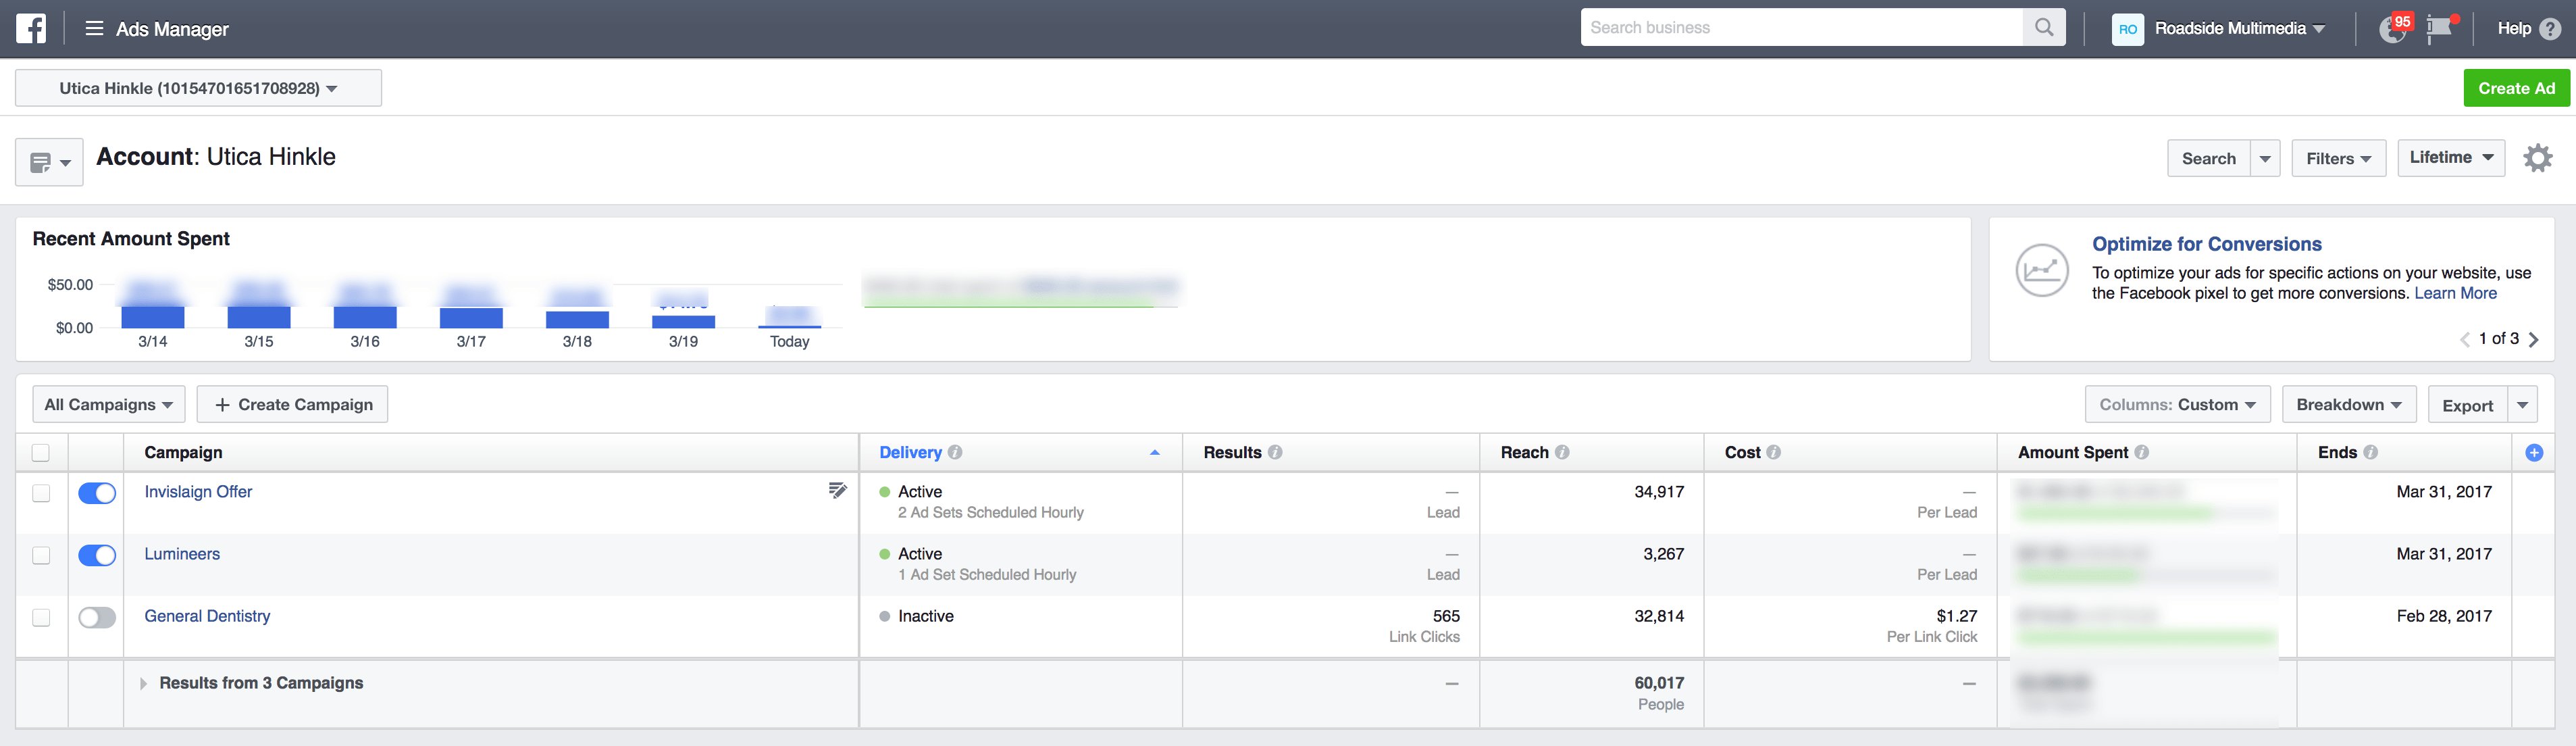 Use Facebook Ad Manager to manage your dental social media campaign